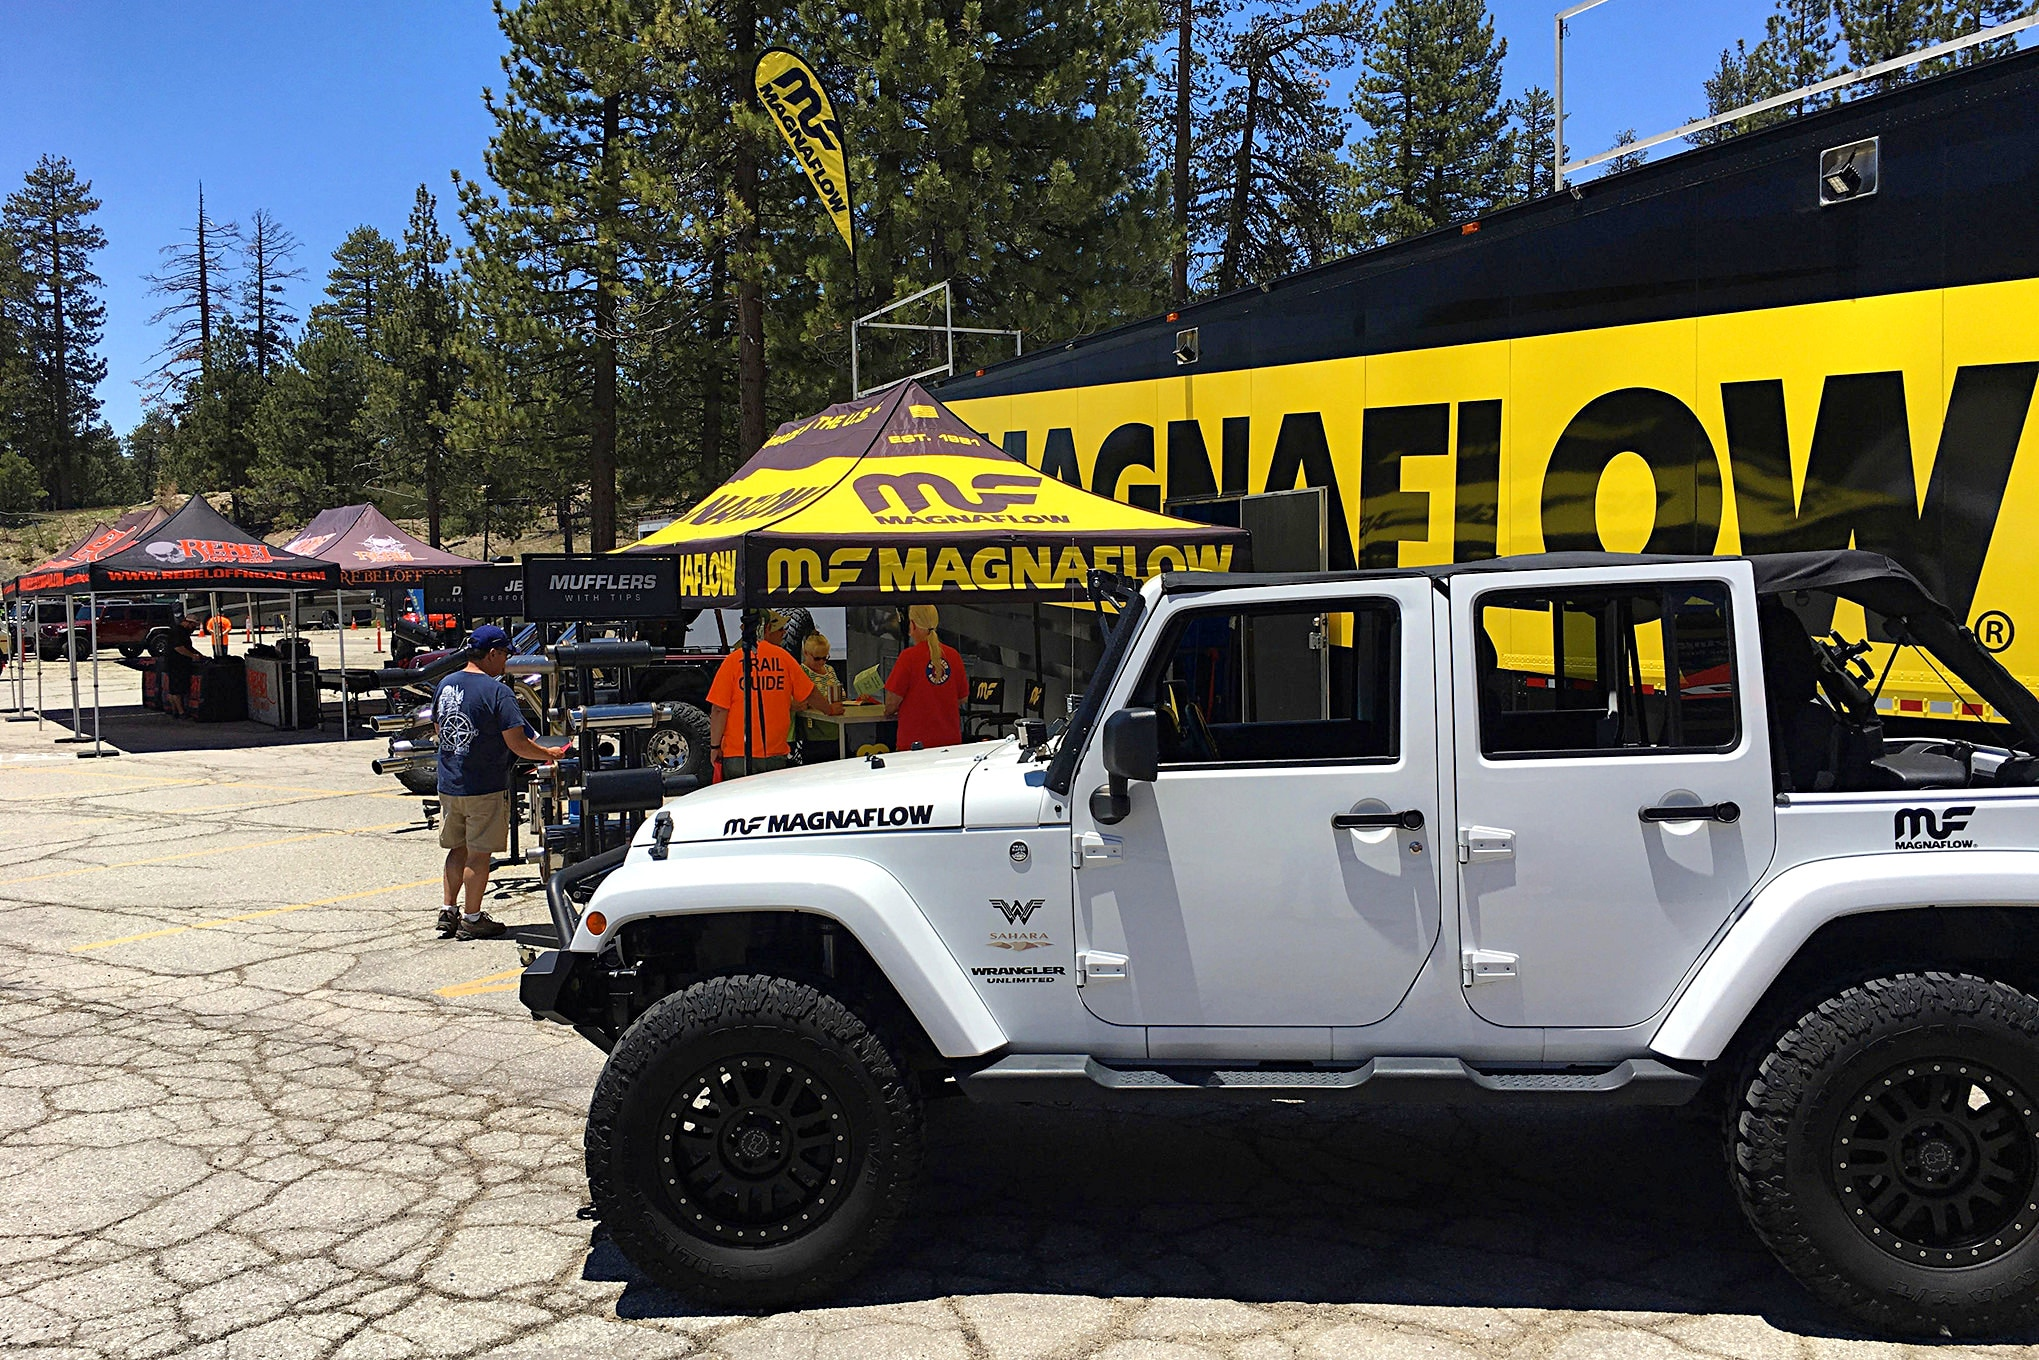 046 jeep event big bear forest fest 2019 inland empire